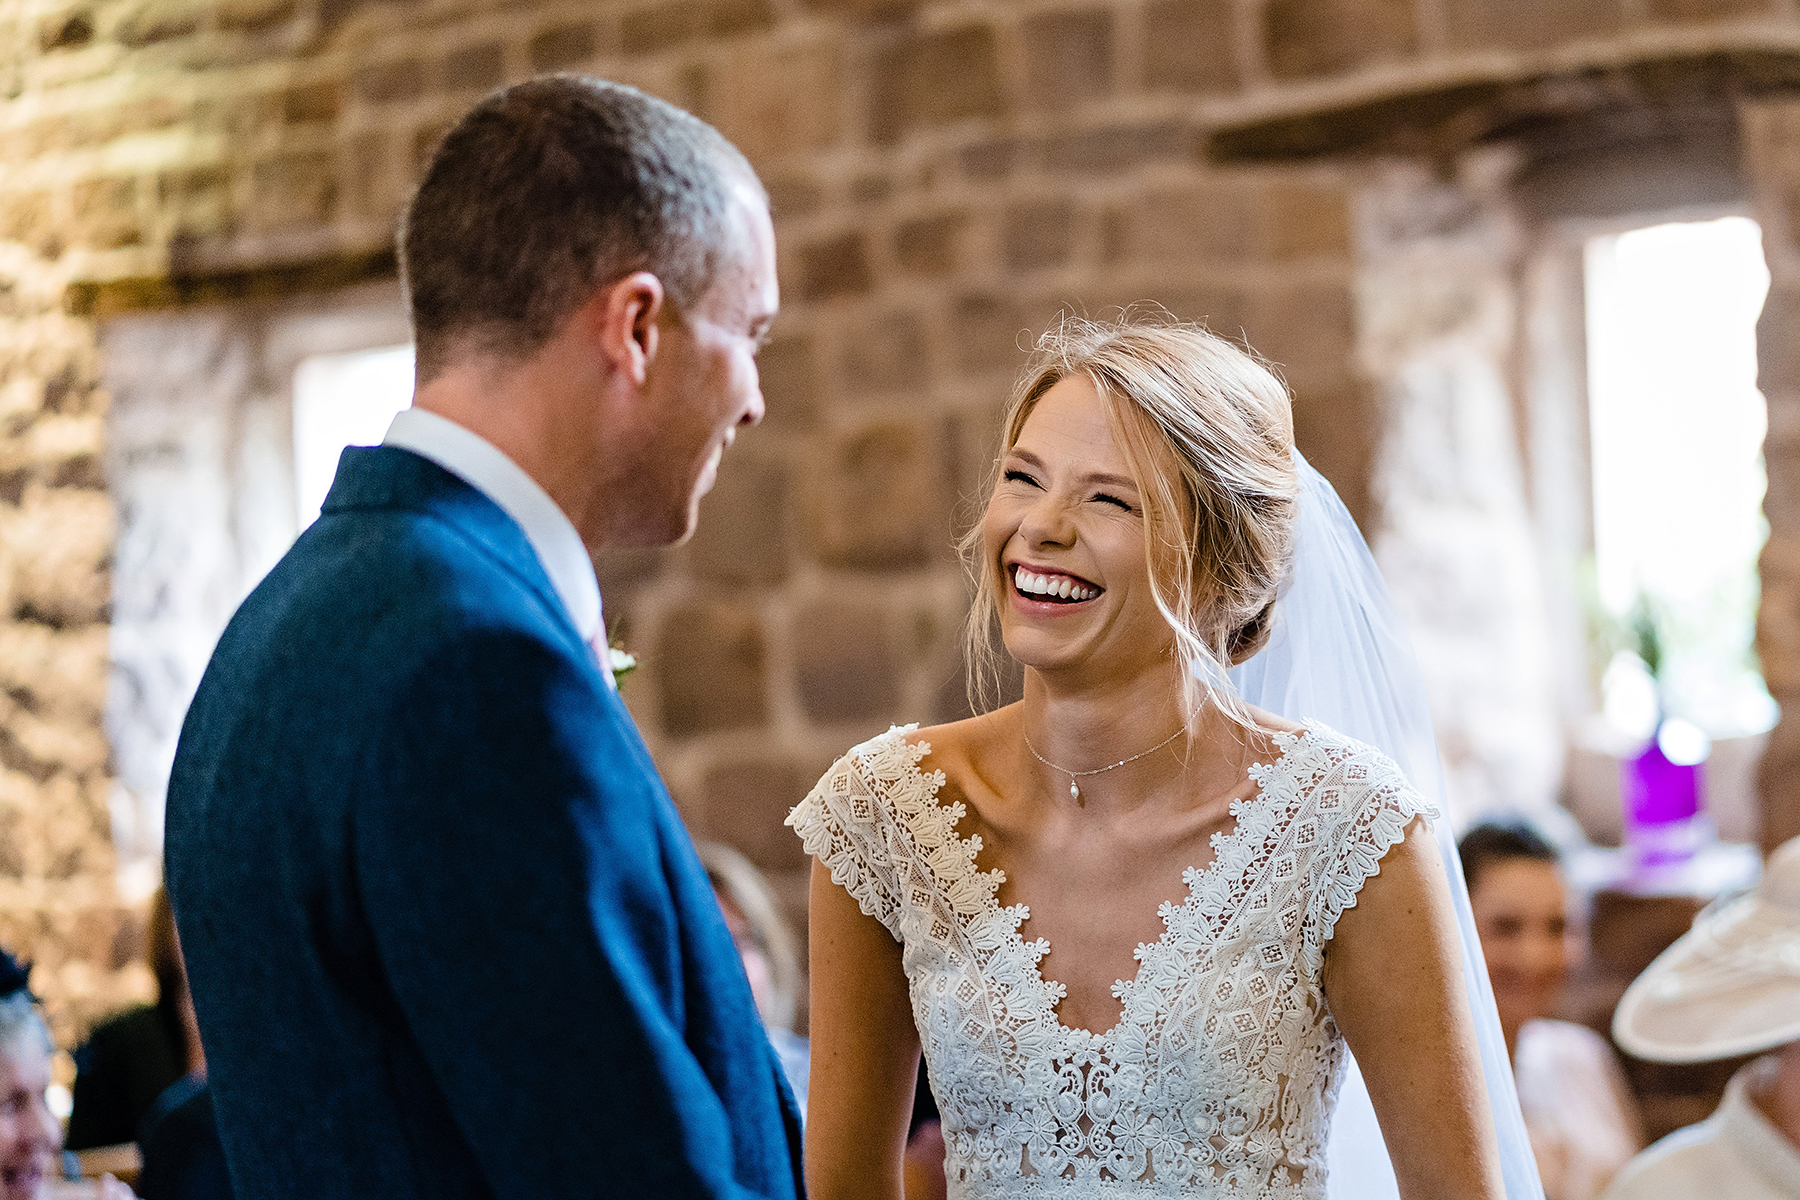 Laughing photograph of a bride